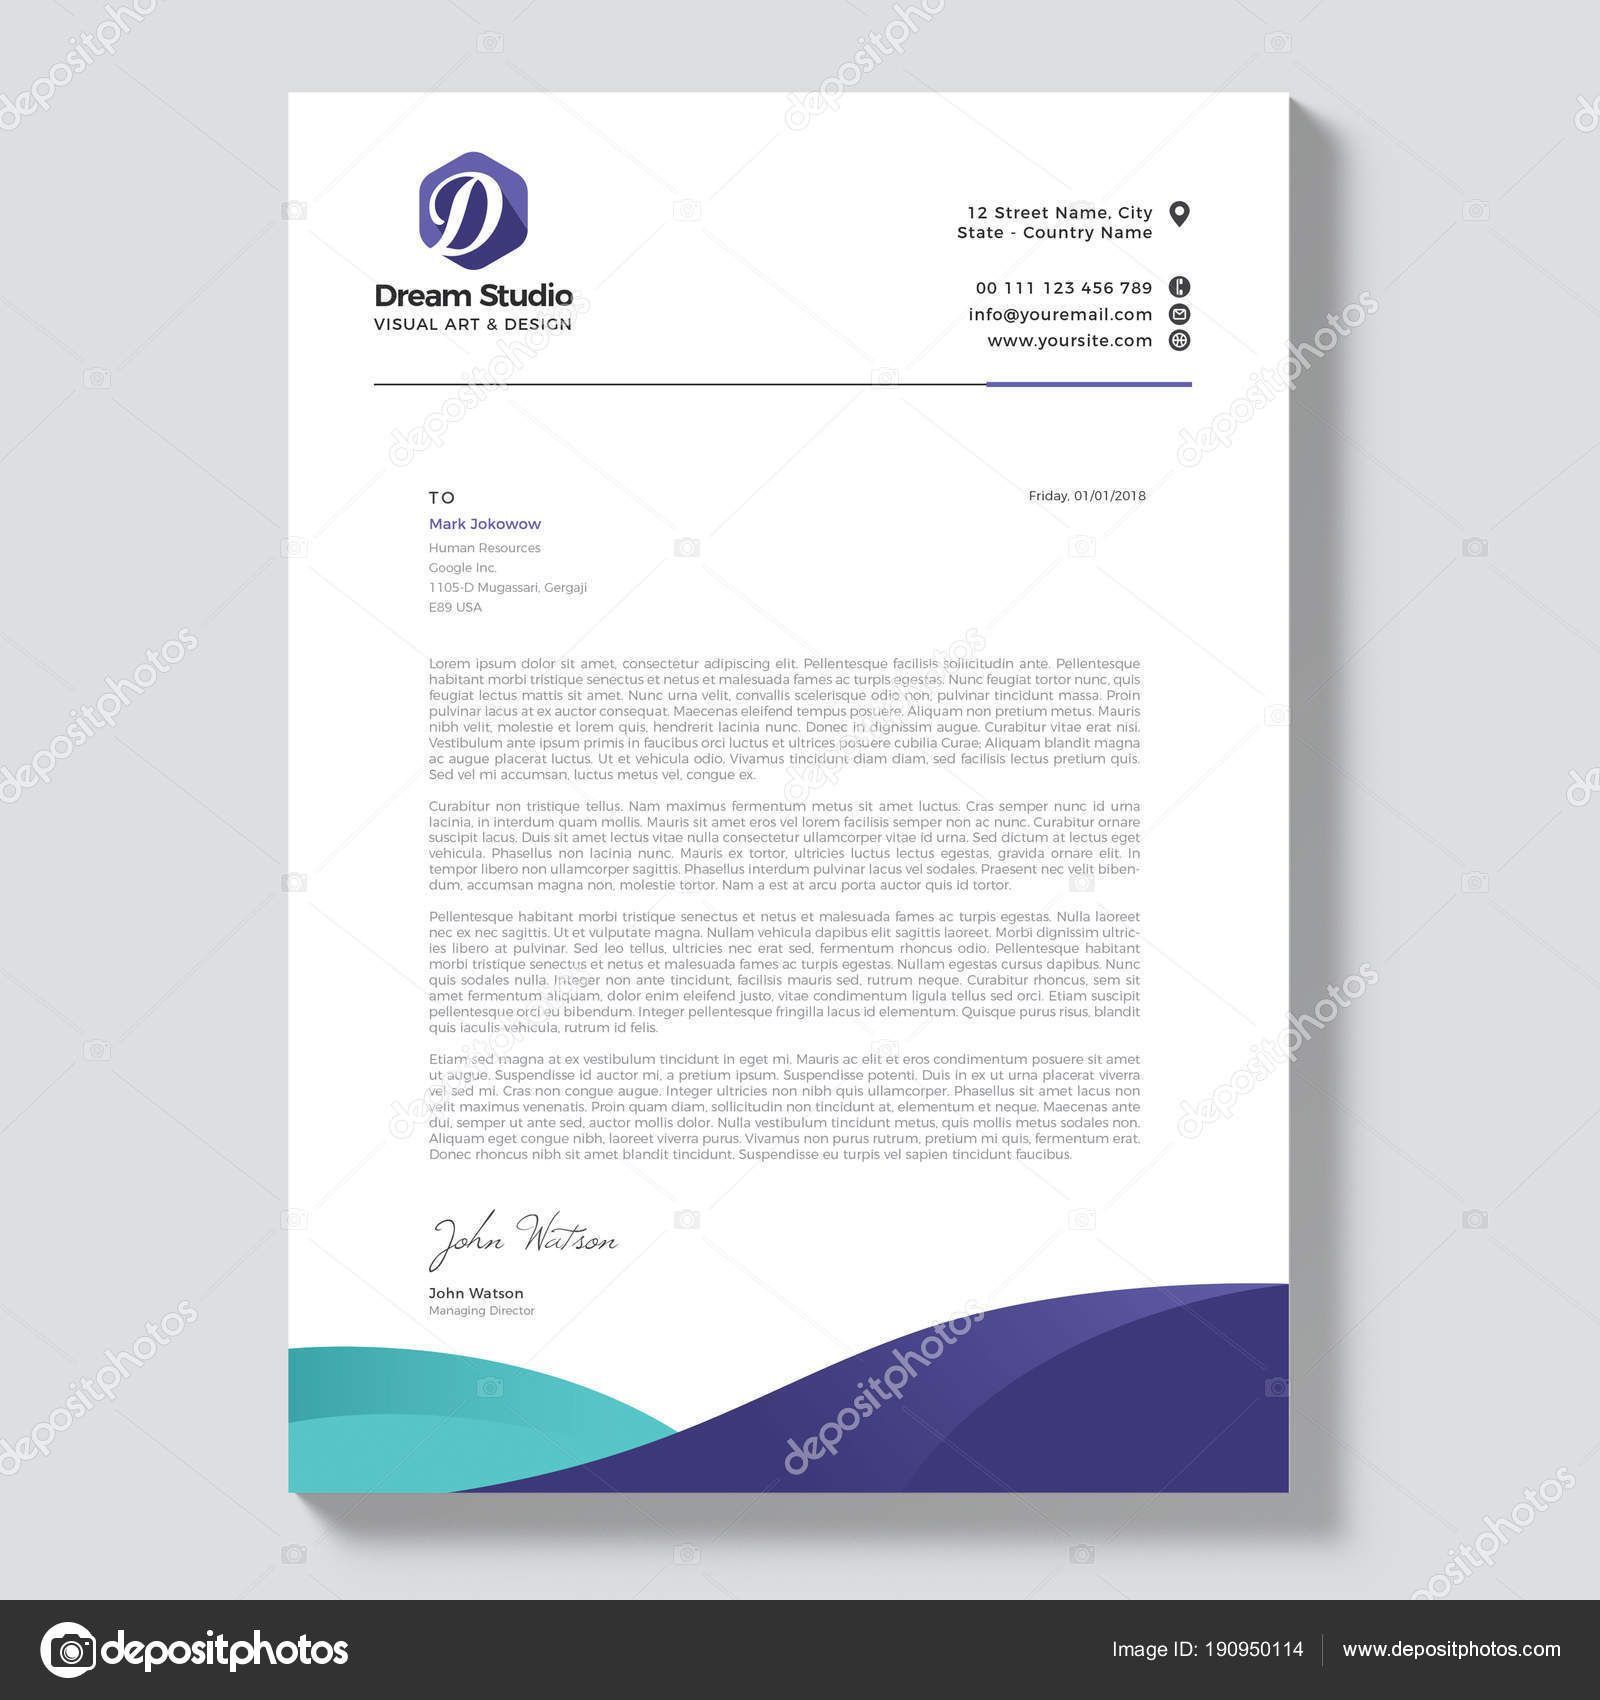 003 Shocking Letterhead Template Free Download Ai High Definition  File